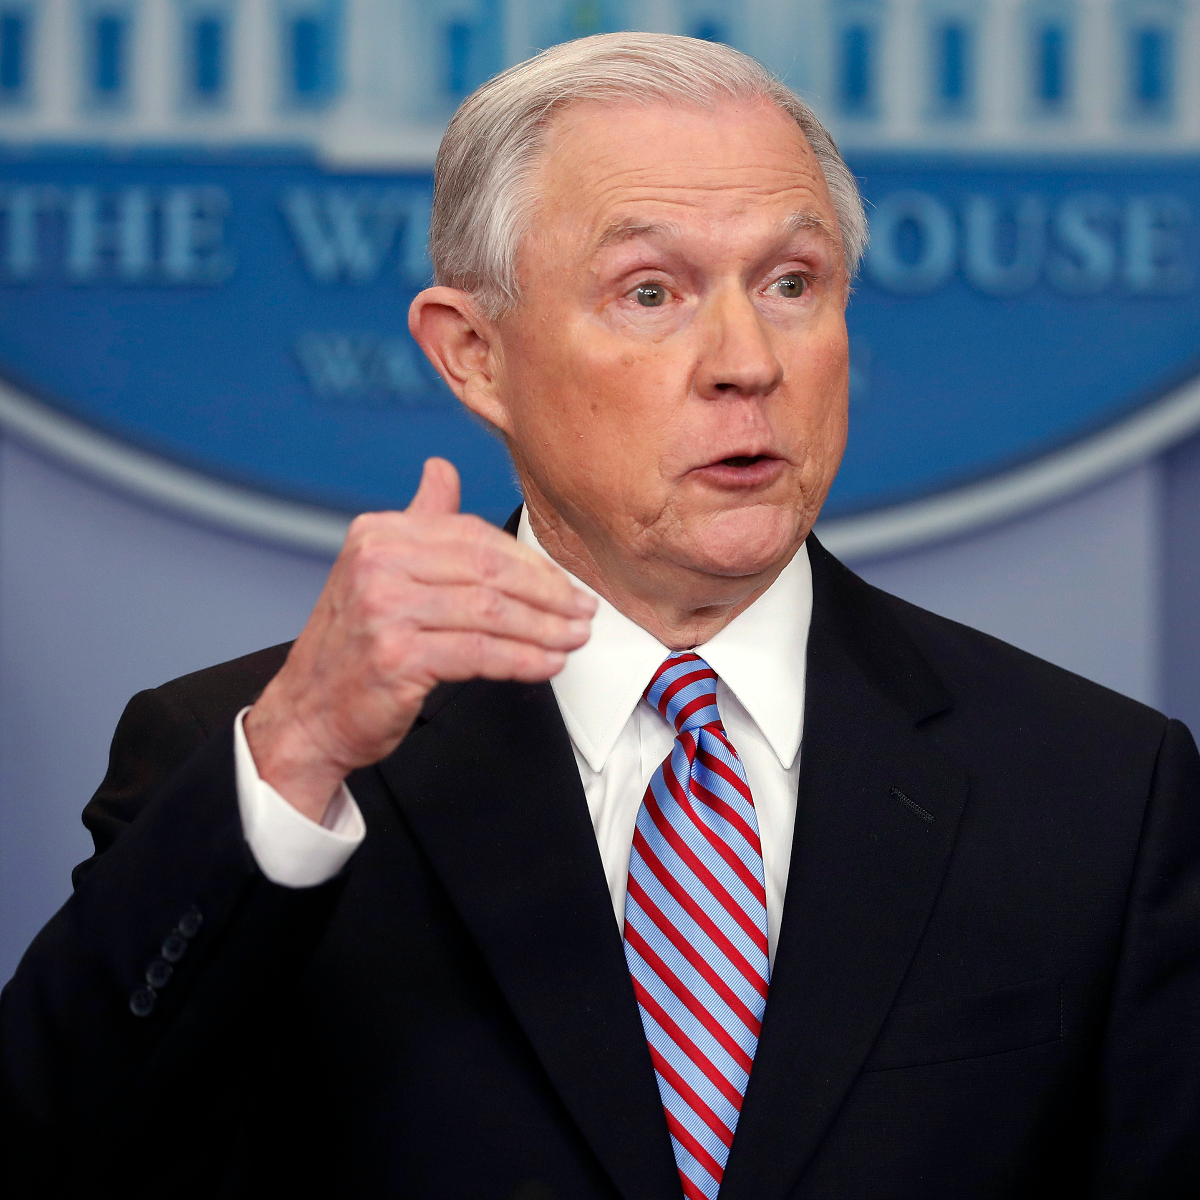 In this March 27, 2017, file photo, Attorney General Jeff Sessions speaks in the Brady Press Briefing Room of the White House in Washington. An agreement negotiated under the Obama administration to overhaul the troubled Baltimore Police Department will go ahead despite objections from the Trump administration. Sessions is warning that the consent decree may 'result in a less safe city.' (AP Photo/Pablo Martinez Monsivais, File)